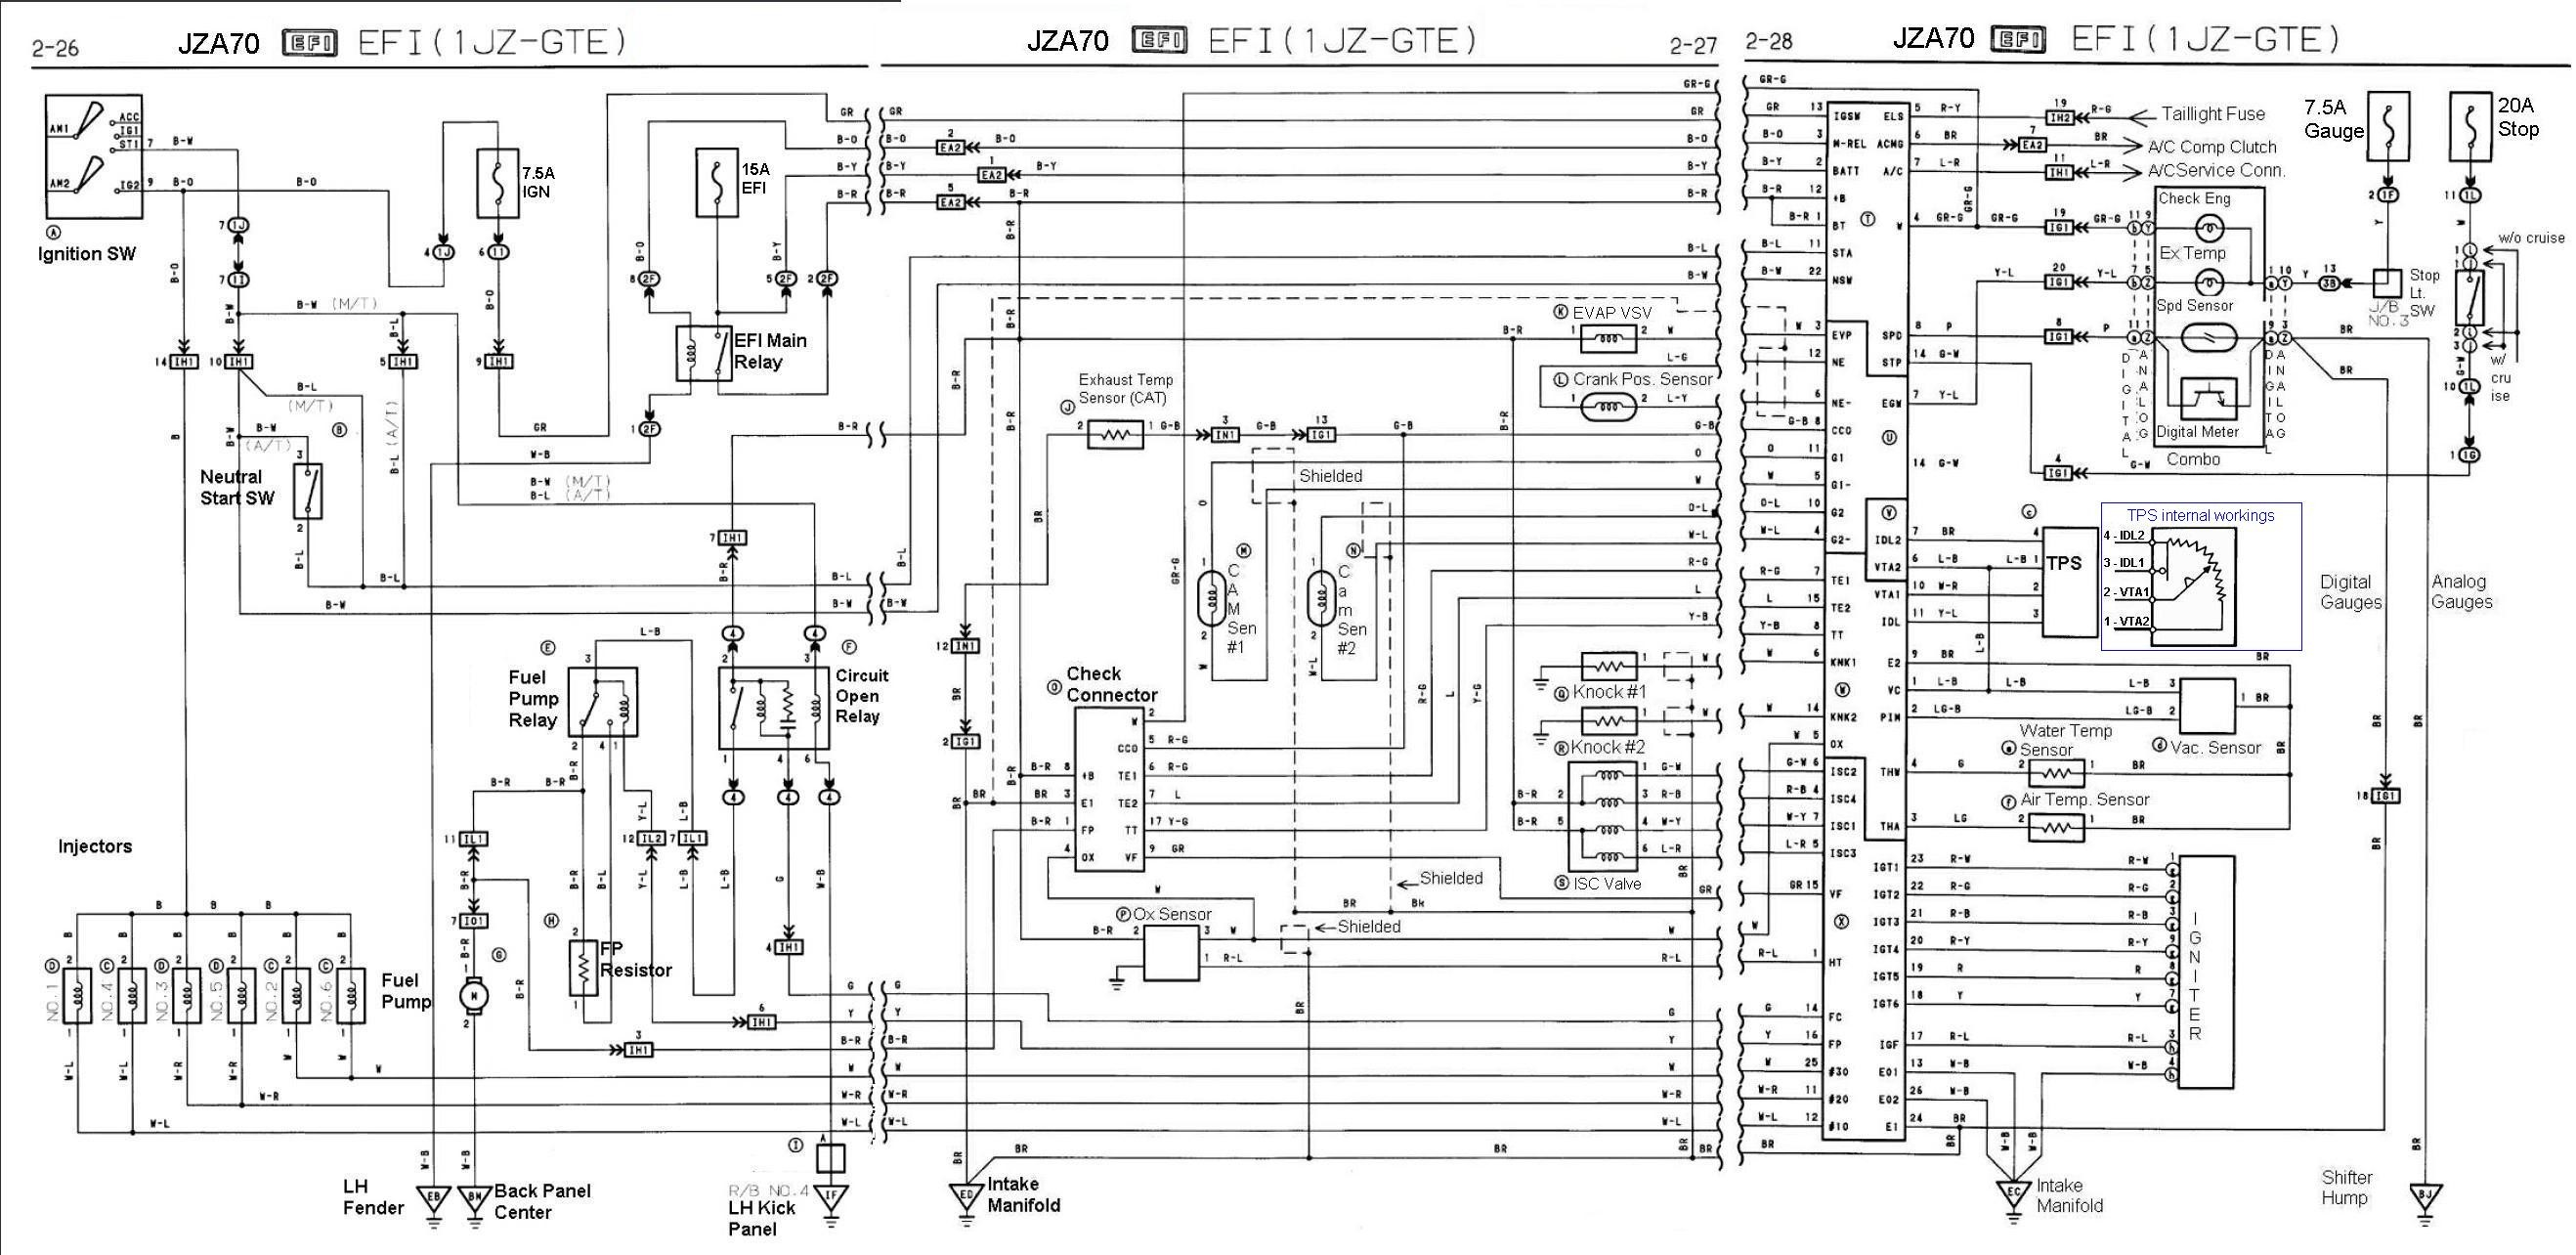 Bmw e46 wiring diagram pdf bmw e46 radio wiring diagram pdf wiring bmw e46 wiring diagram pdf new wiring diagram image bmw e46 m3 wiring diagram pdf bmw asfbconference2016 Image collections